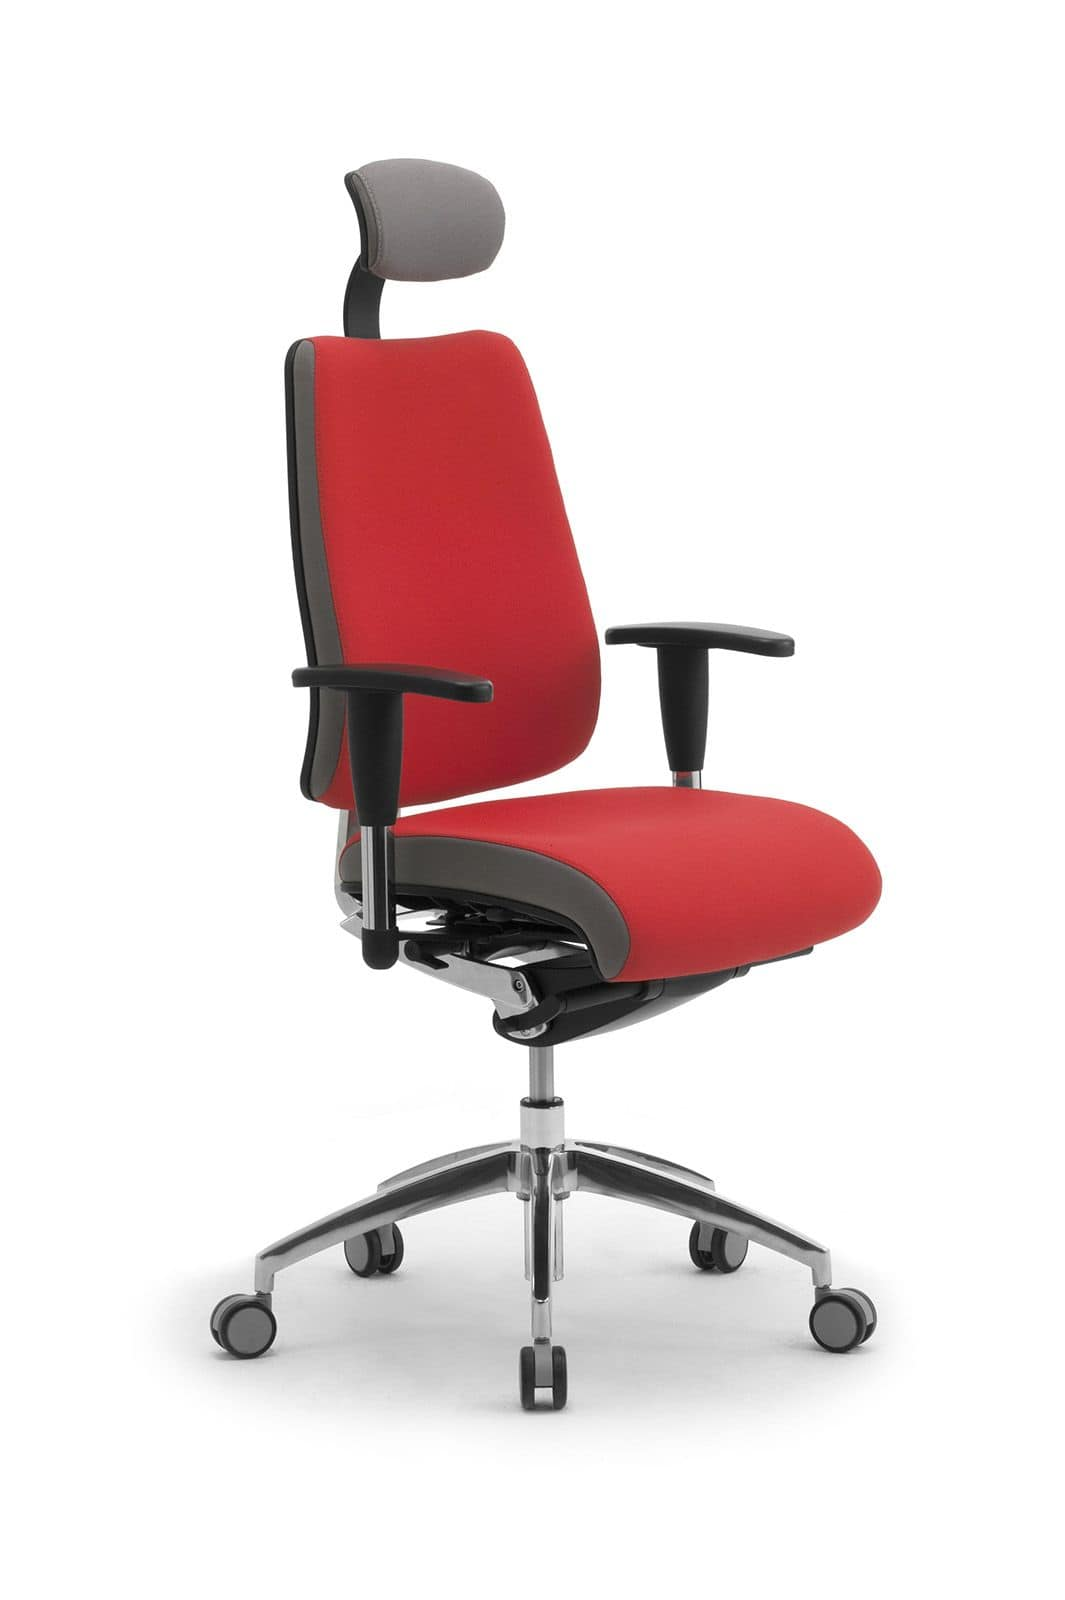 japanese posture chair hanging chairs uk adjusting manager office idfdesign